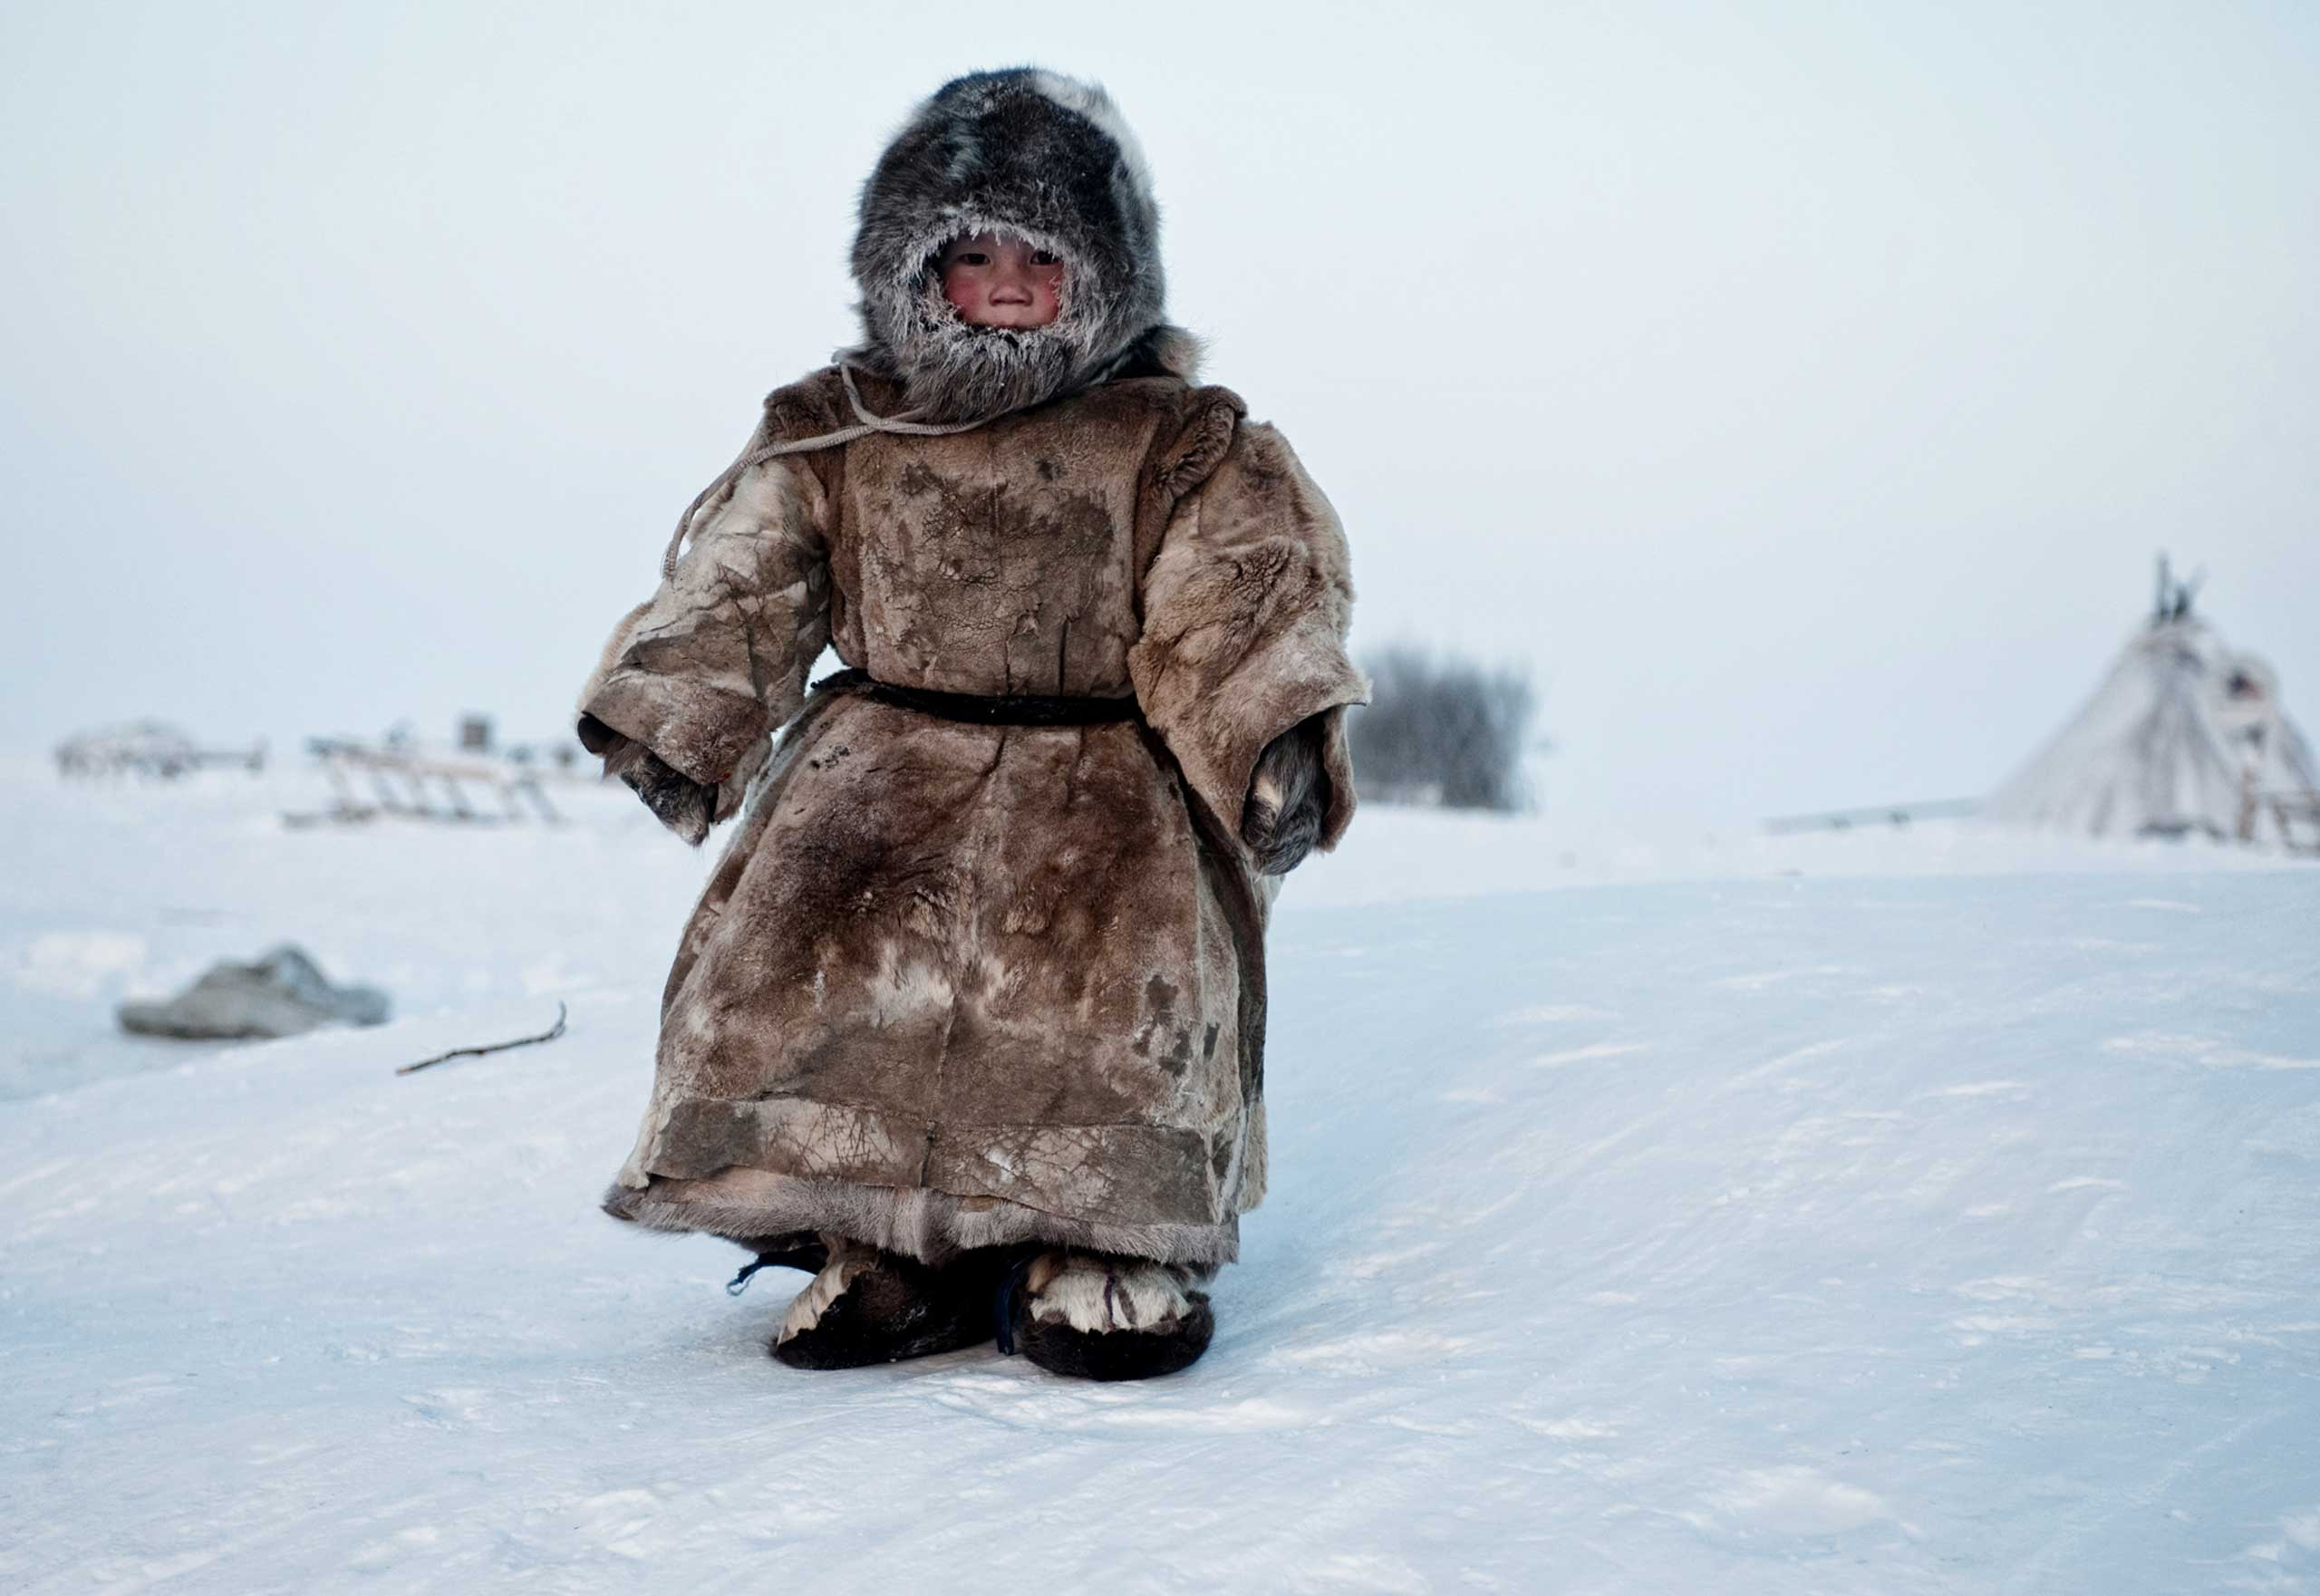 Nominated in the mile category. Simon Morris' work on the Nenets people in Siberia.